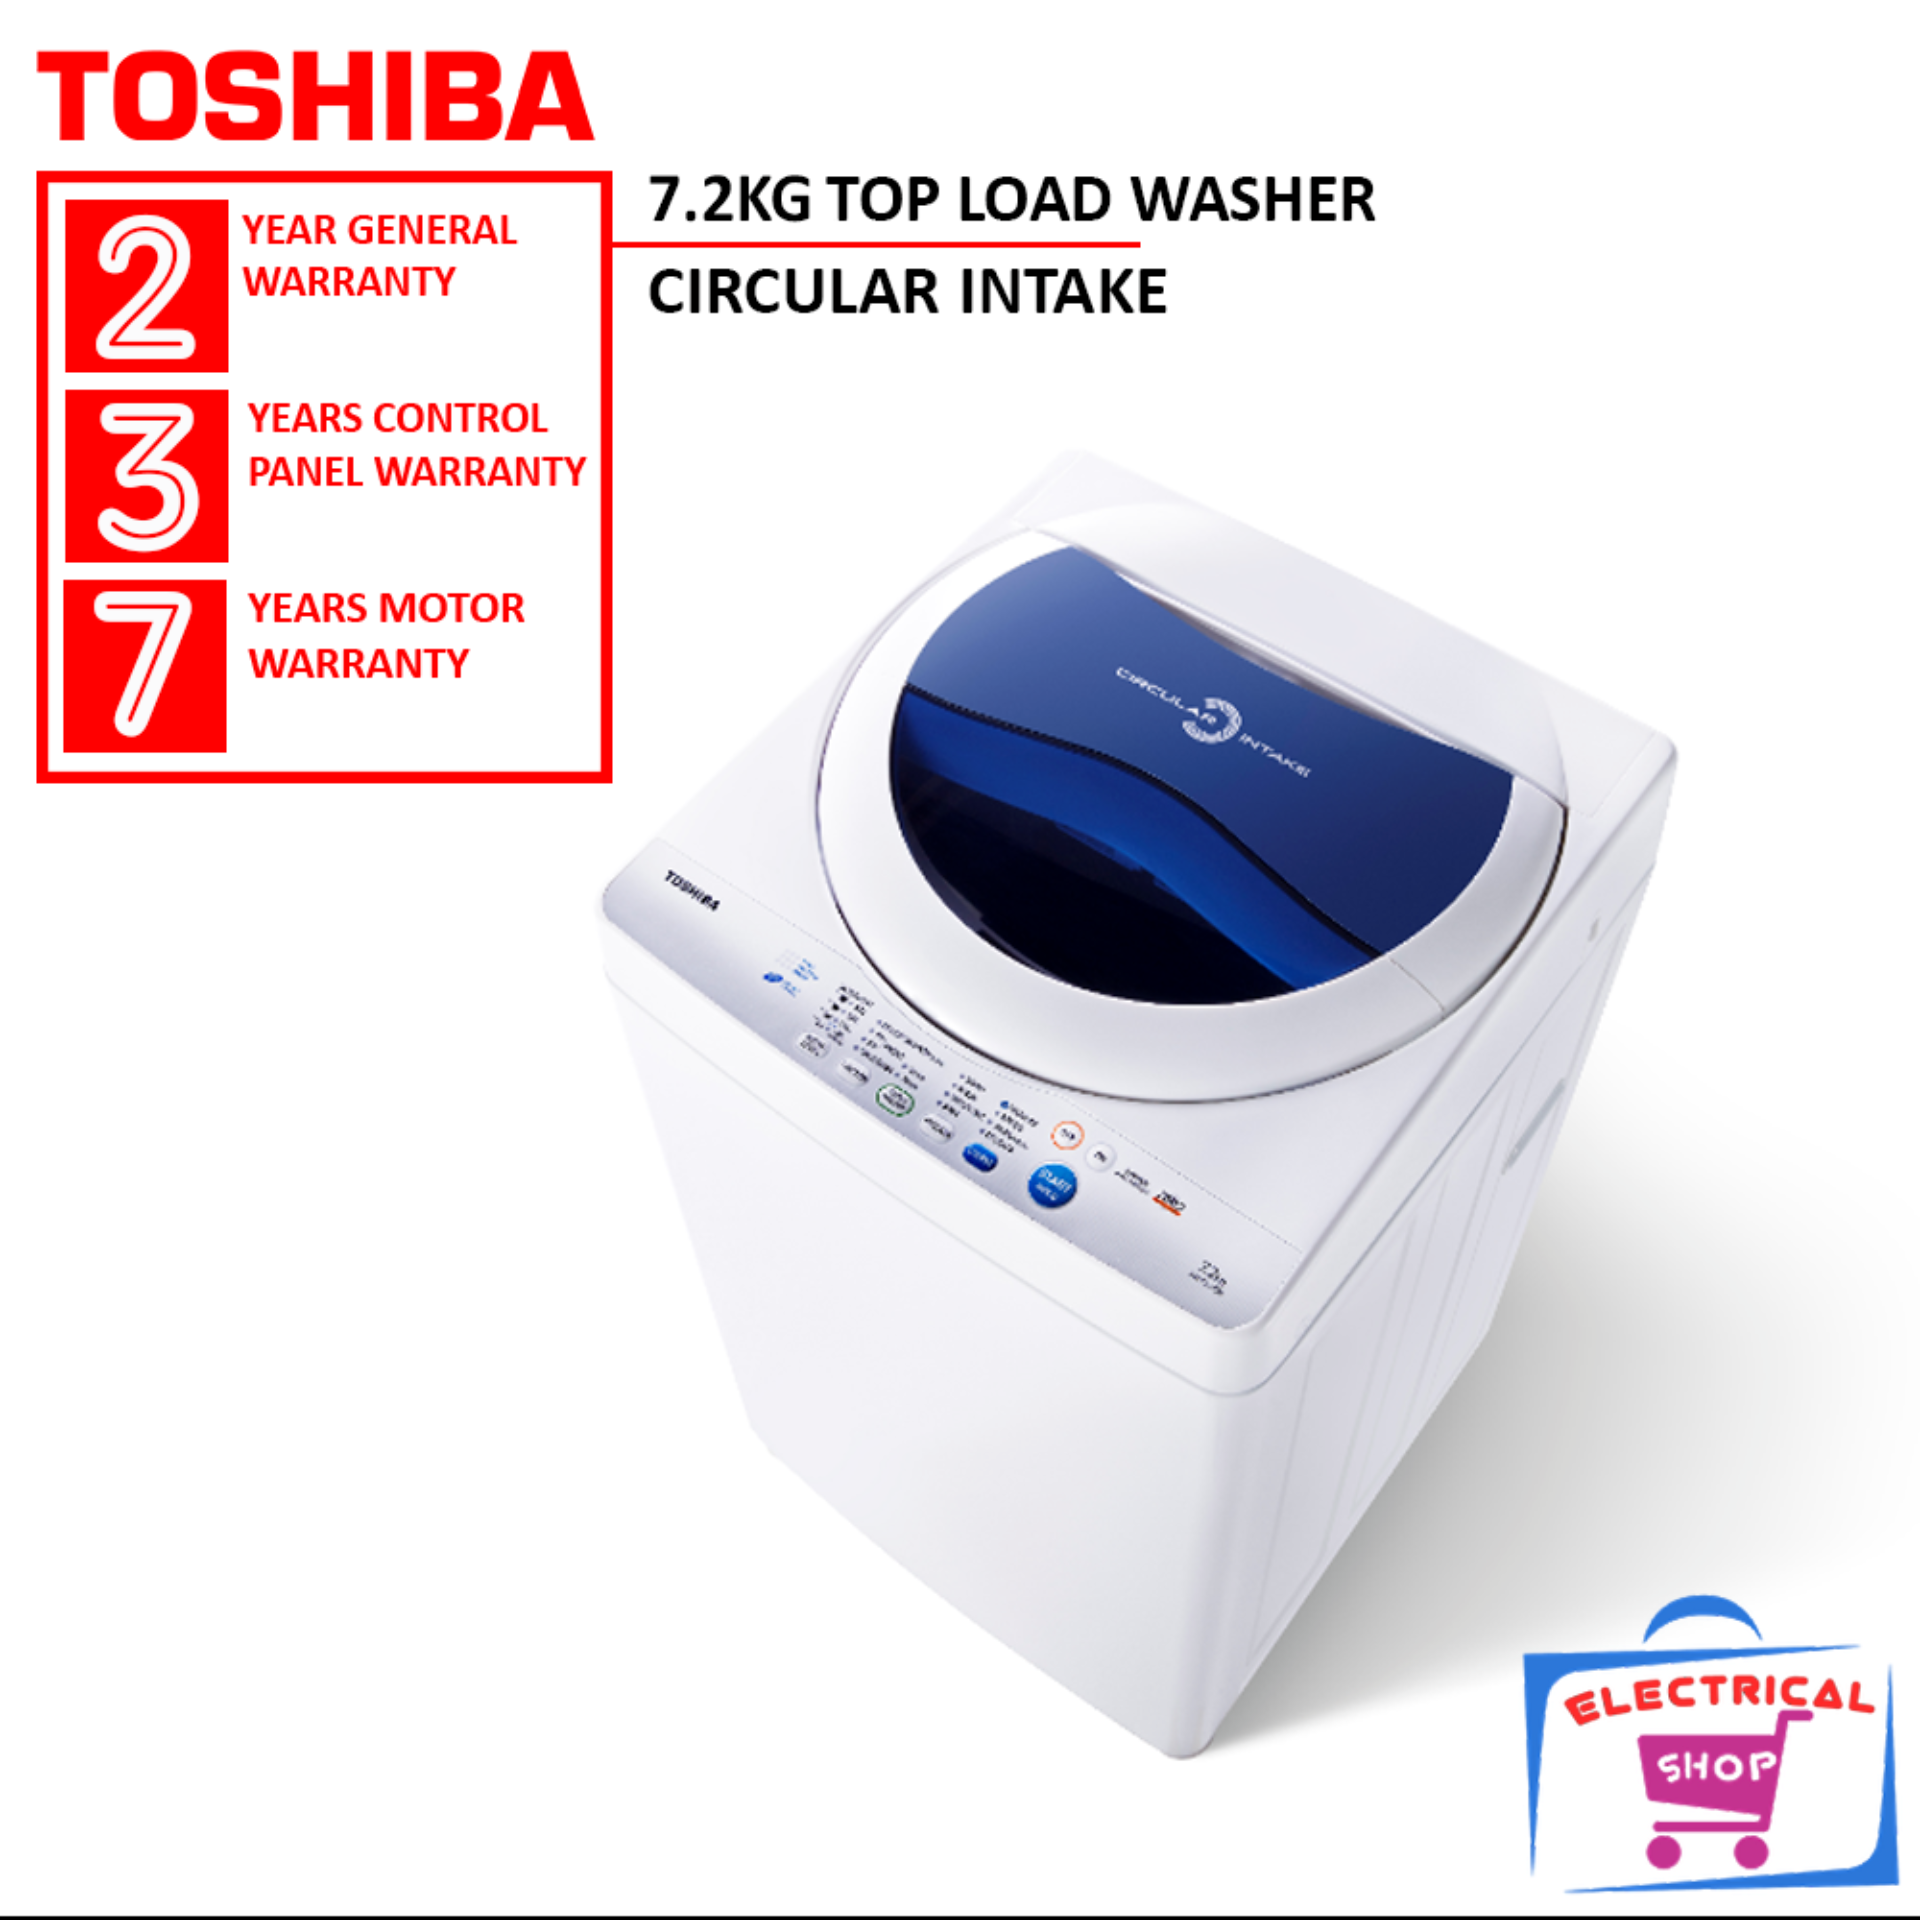 Toshiba Washing Machine AW-F820SM 7.2KG Top Load Washer AWF820SM